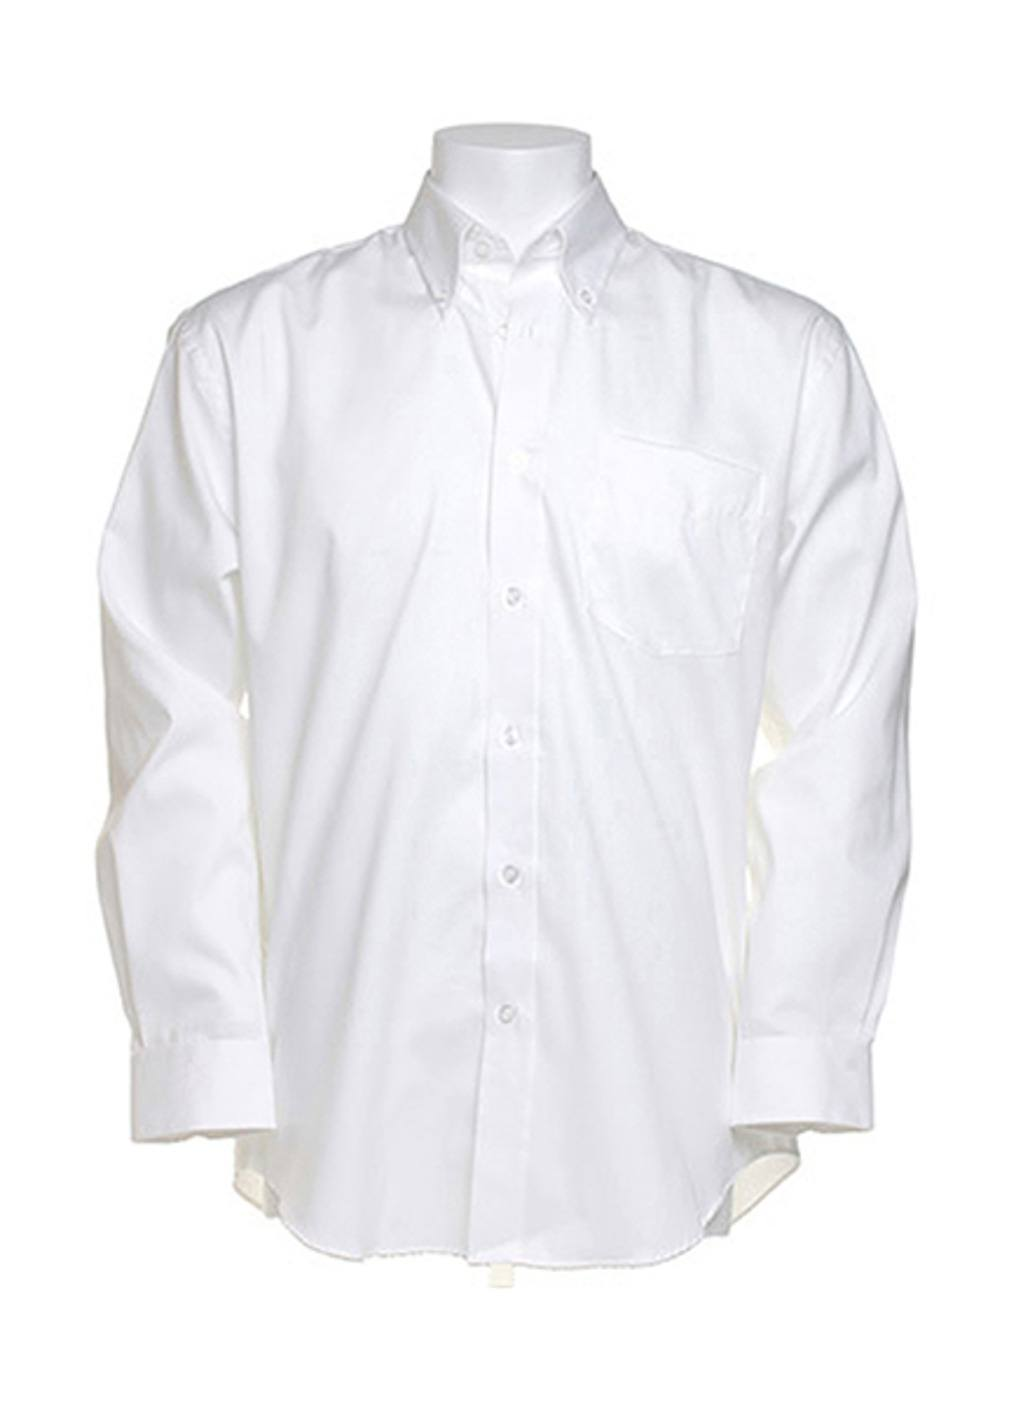 Corporate oxford shirt LS 778.11